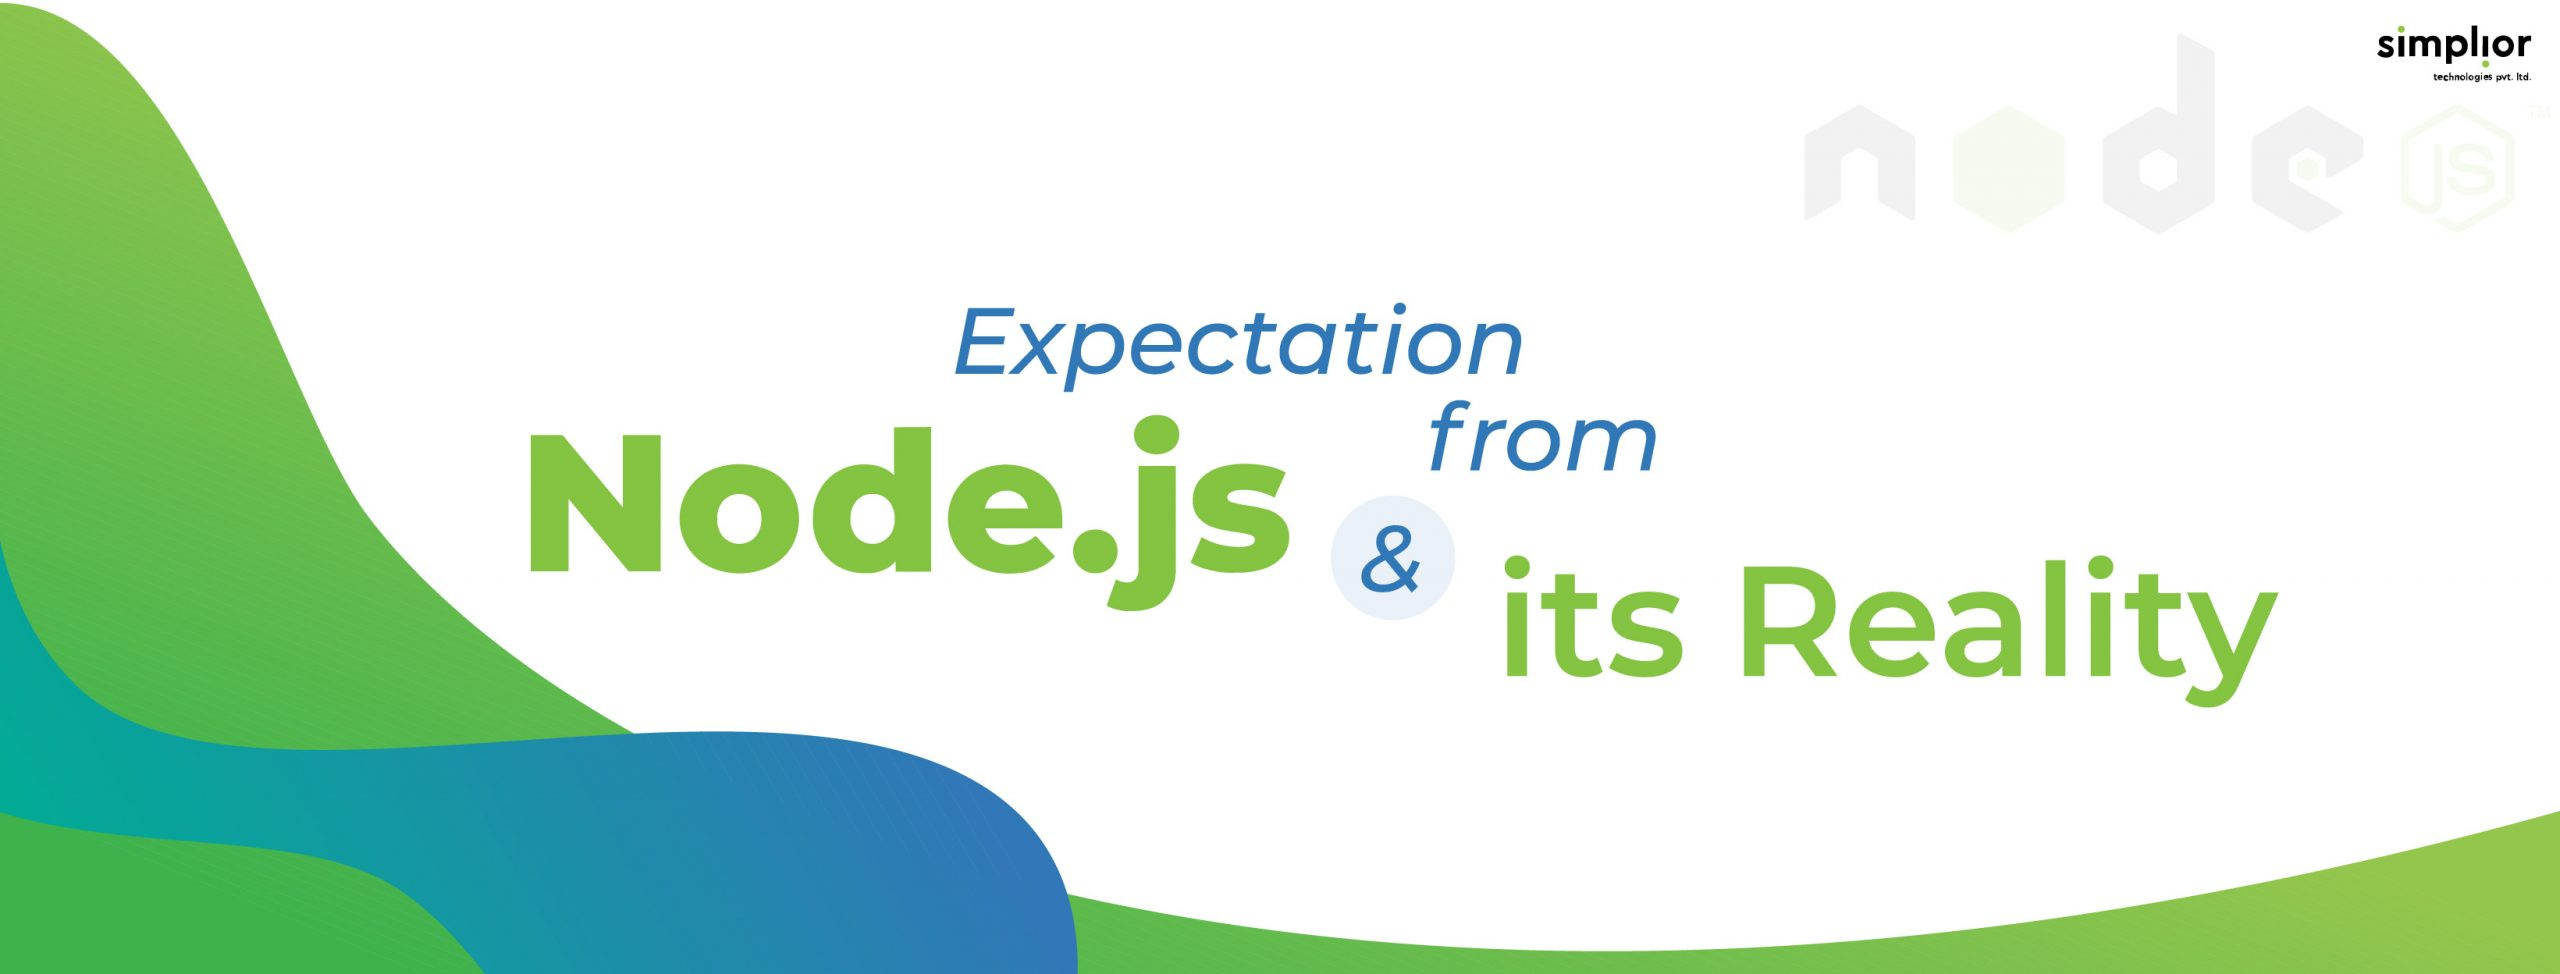 What is the expectation from Node.js & its Reality